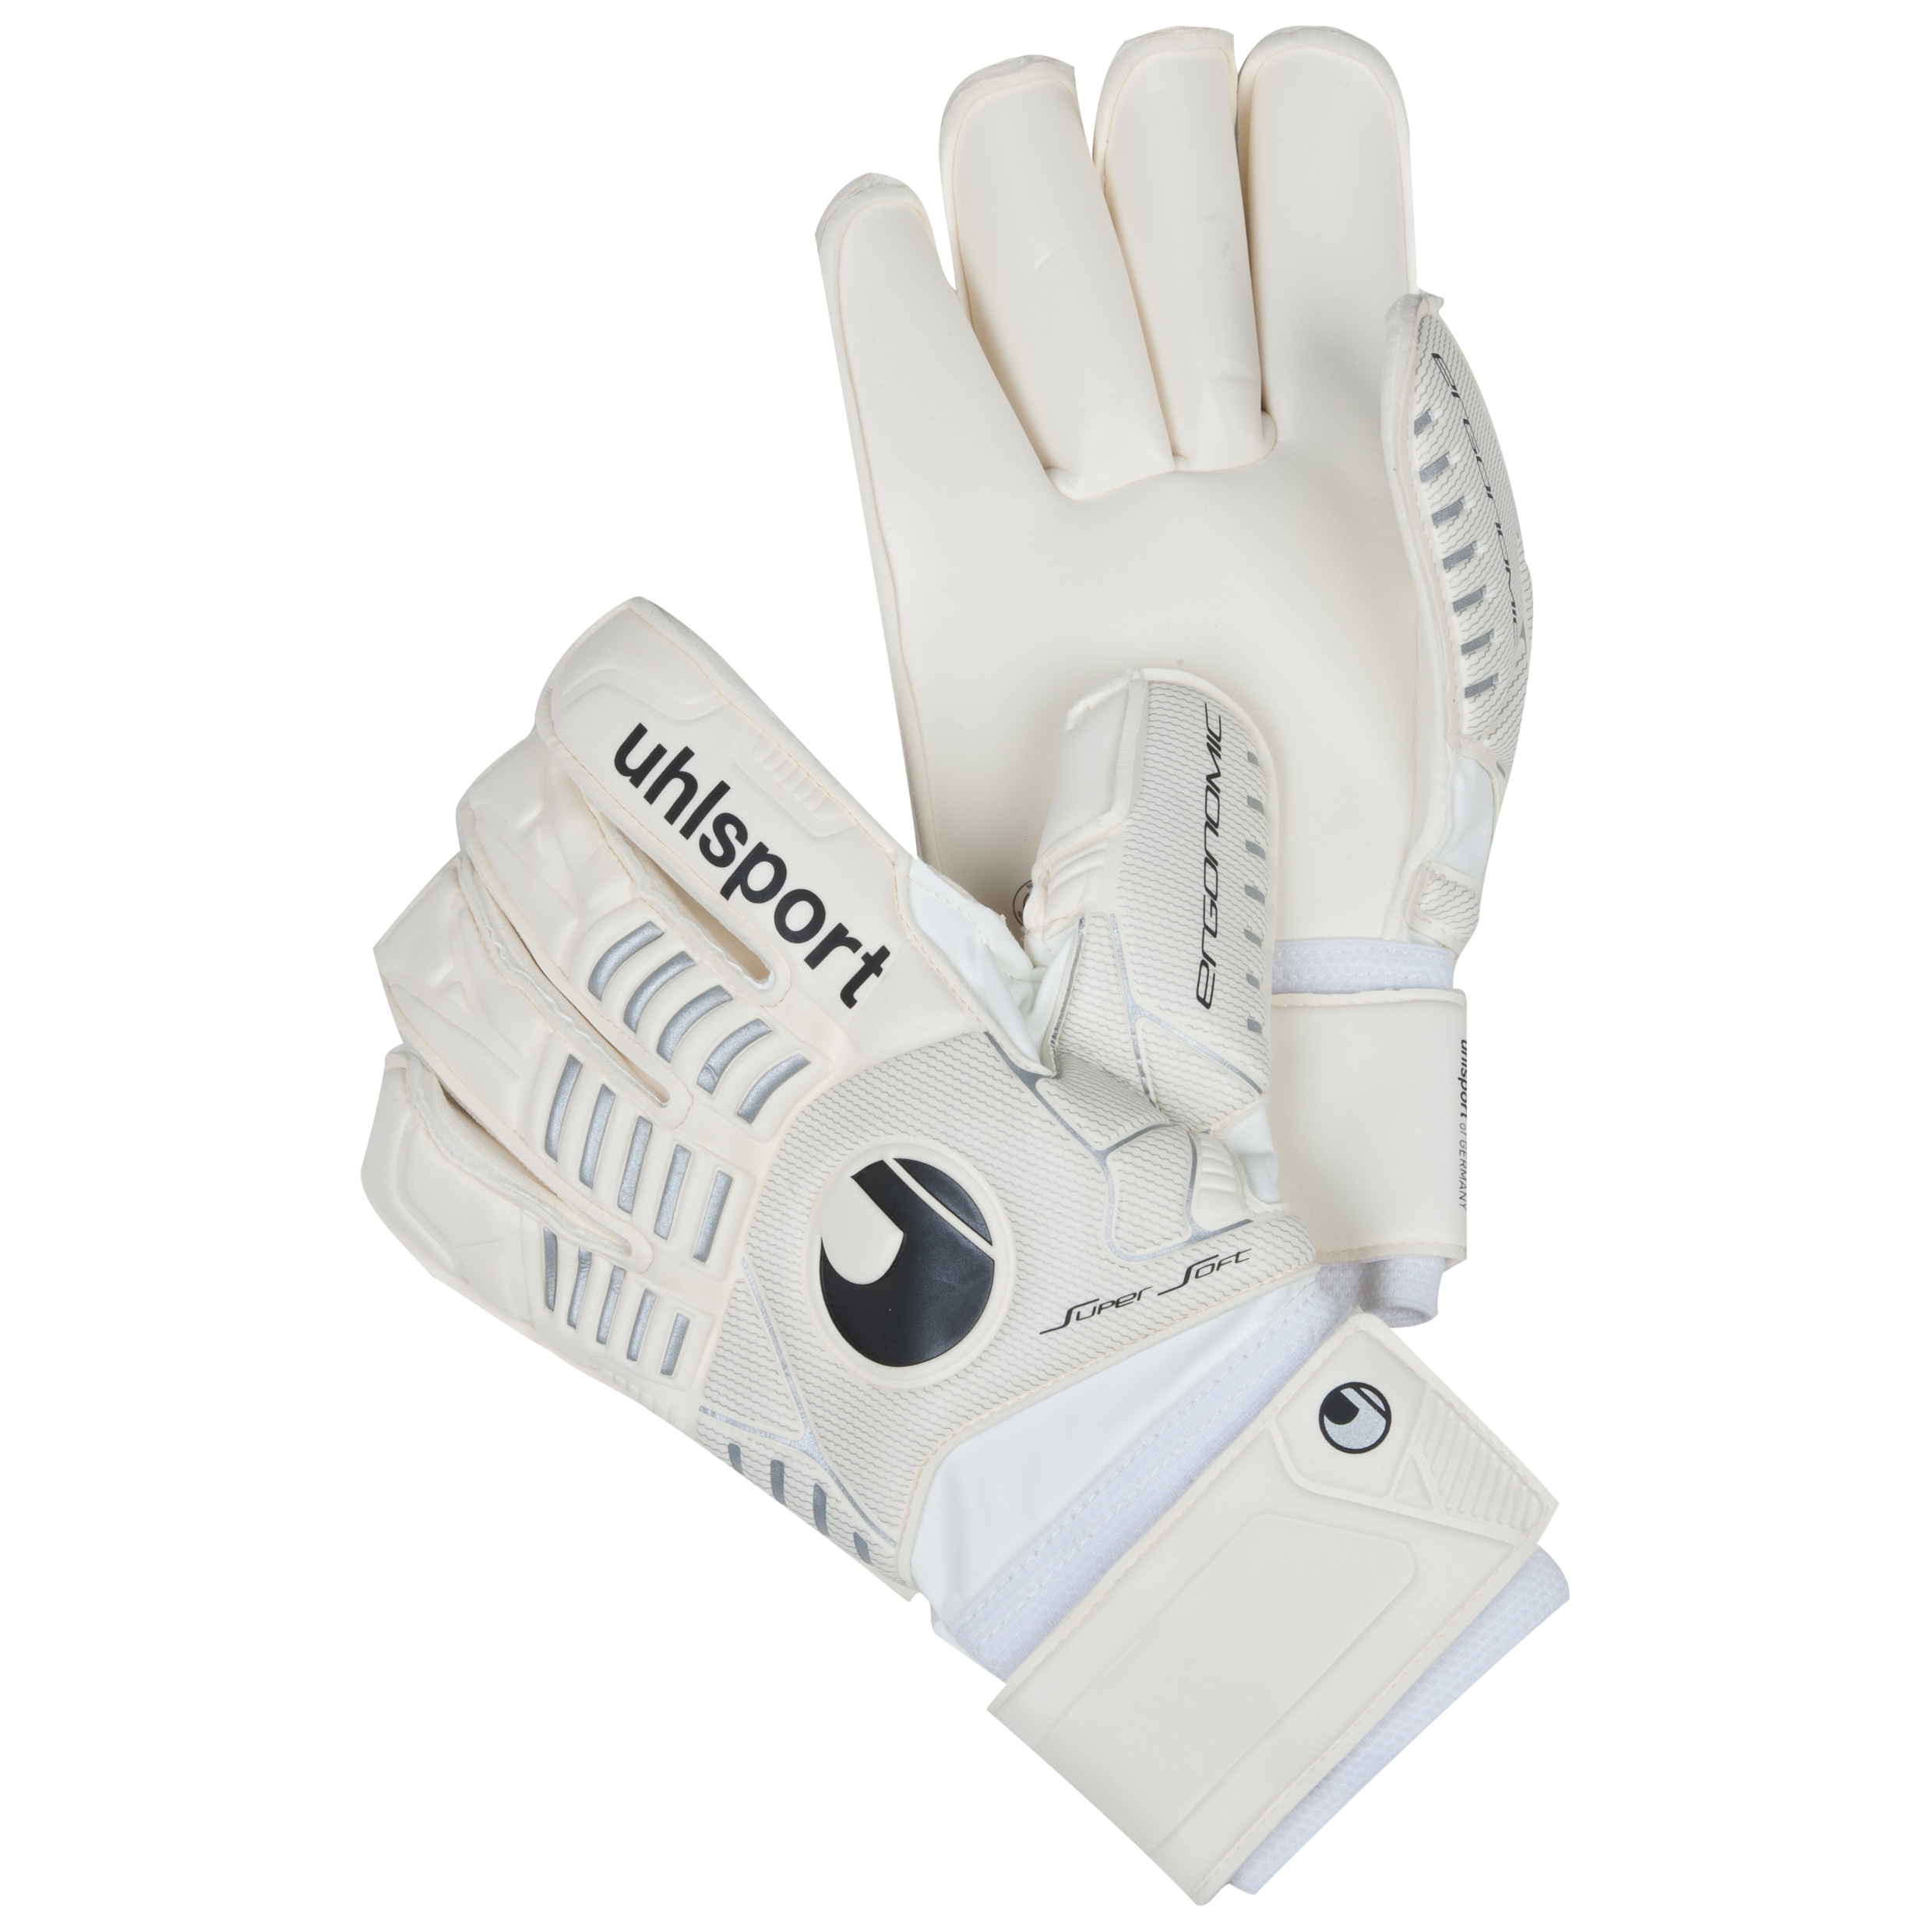 Uhlsport Ergonomic Supersoft Rollfinger Goalkeeper Gloves - White/Silver/Black